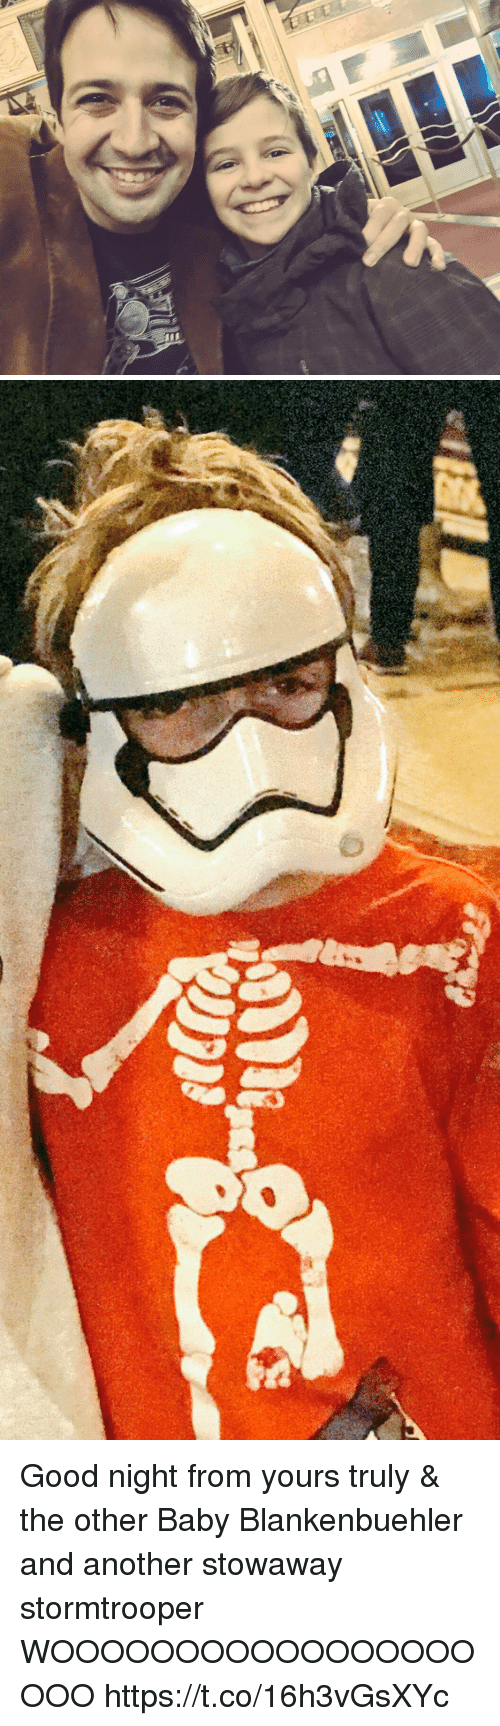 Stormtrooper: Good night from yours truly & the other Baby Blankenbuehler and another stowaway stormtrooper  WOOOOOOOOOOOOOOOOOOOO https://t.co/16h3vGsXYc